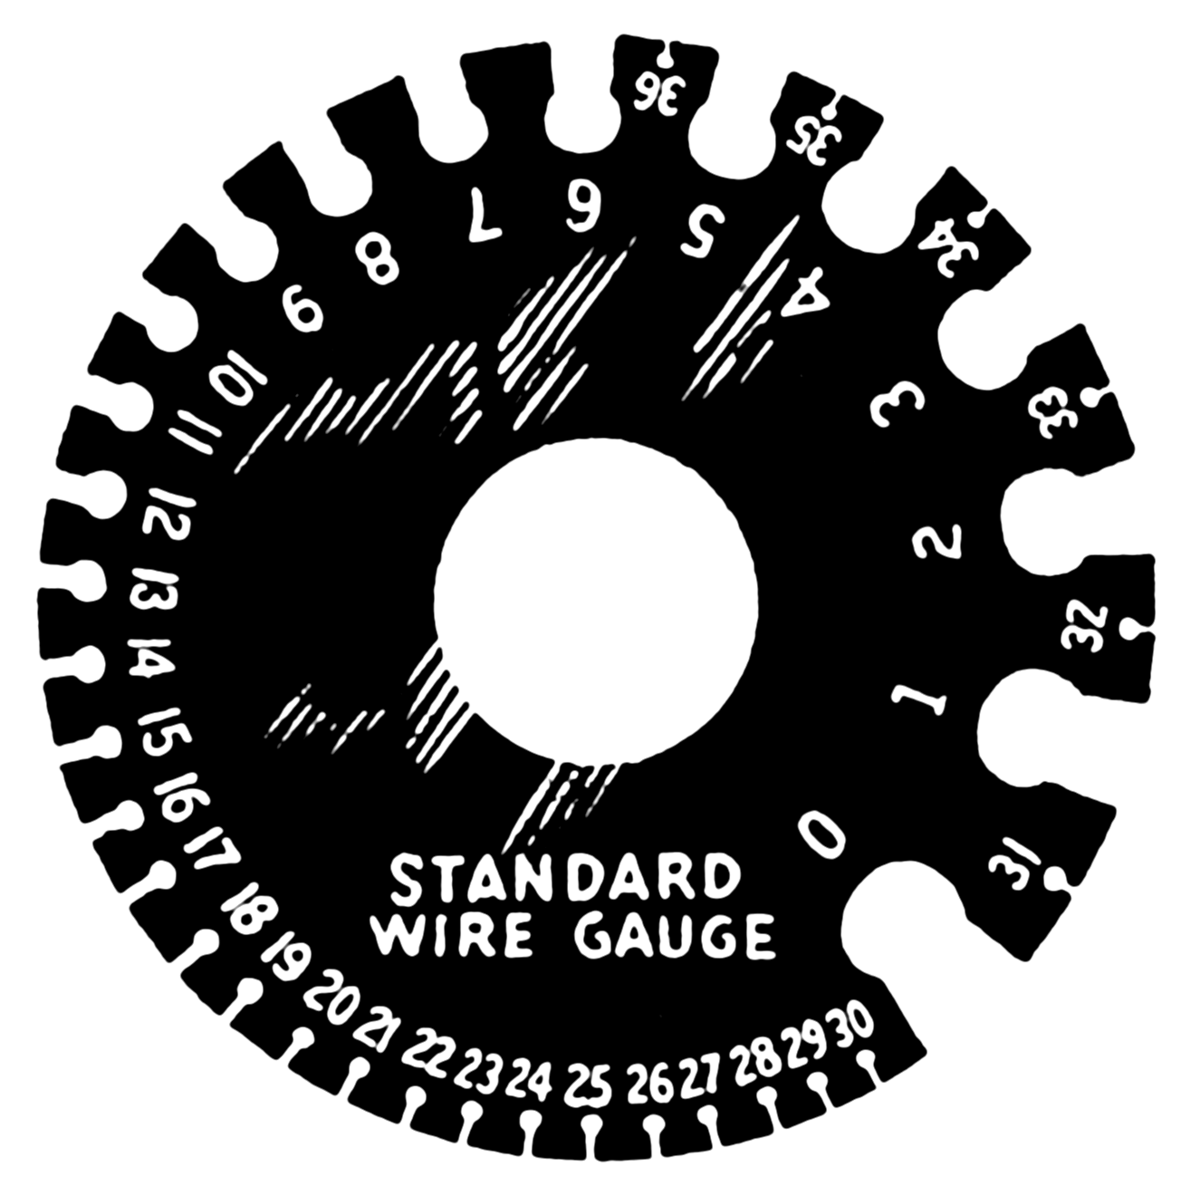 Standard wire gauge wikipedia keyboard keysfo Image collections